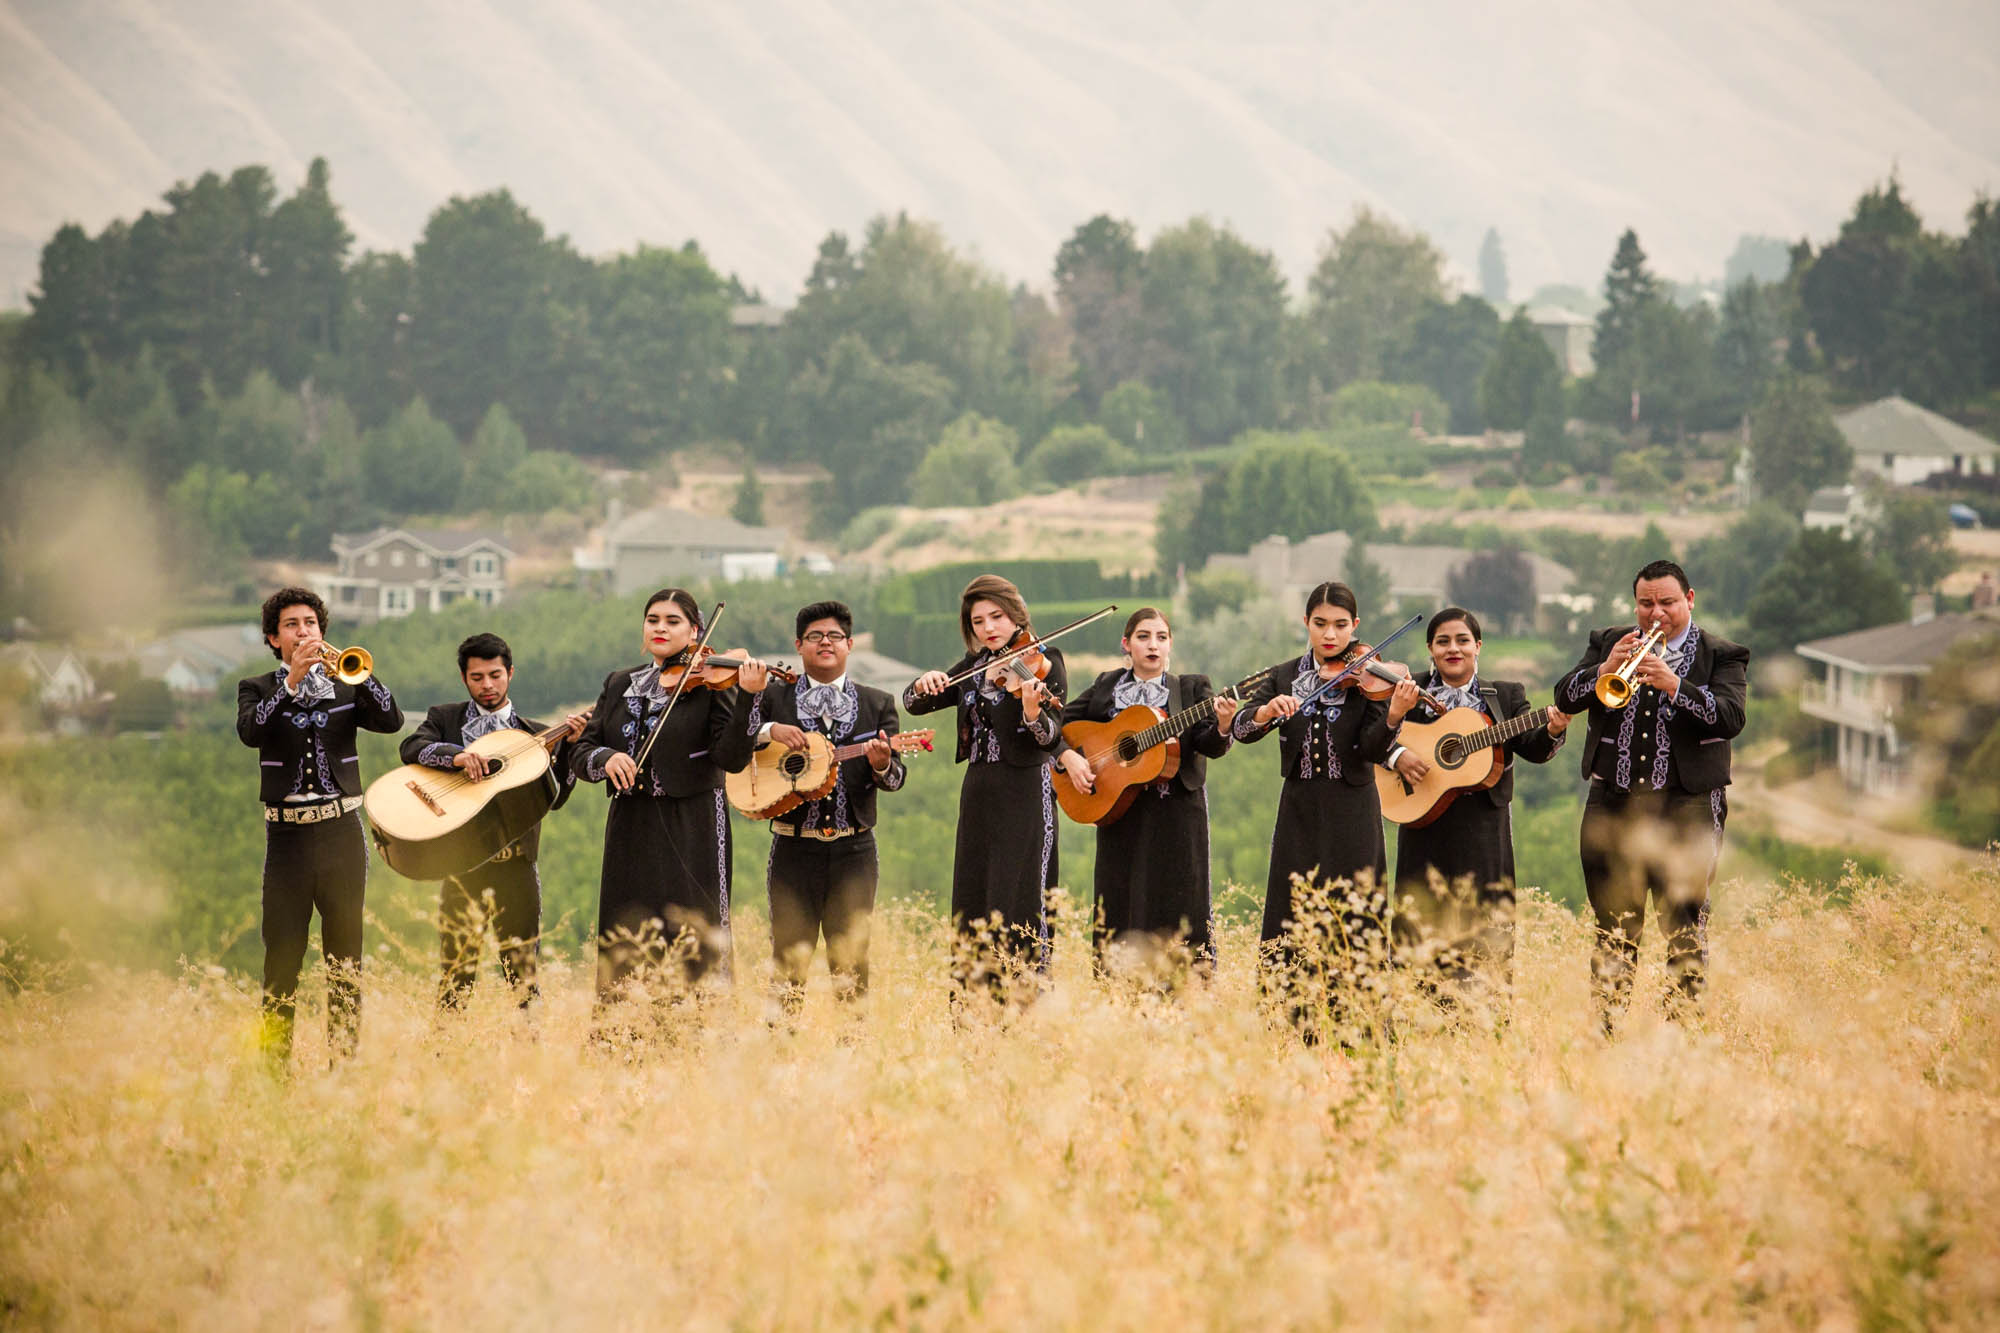 1889 Magazine  | Mariachi Huenachi   I had the pleasure of meeting (and listening to) the very talented Mariachi Huenachi high school band in November of 2017. I photographed them performing for a story in 1889 Washington's Magazine. They perform all over the country and are beloved in their home town of Wenatchee, WA.